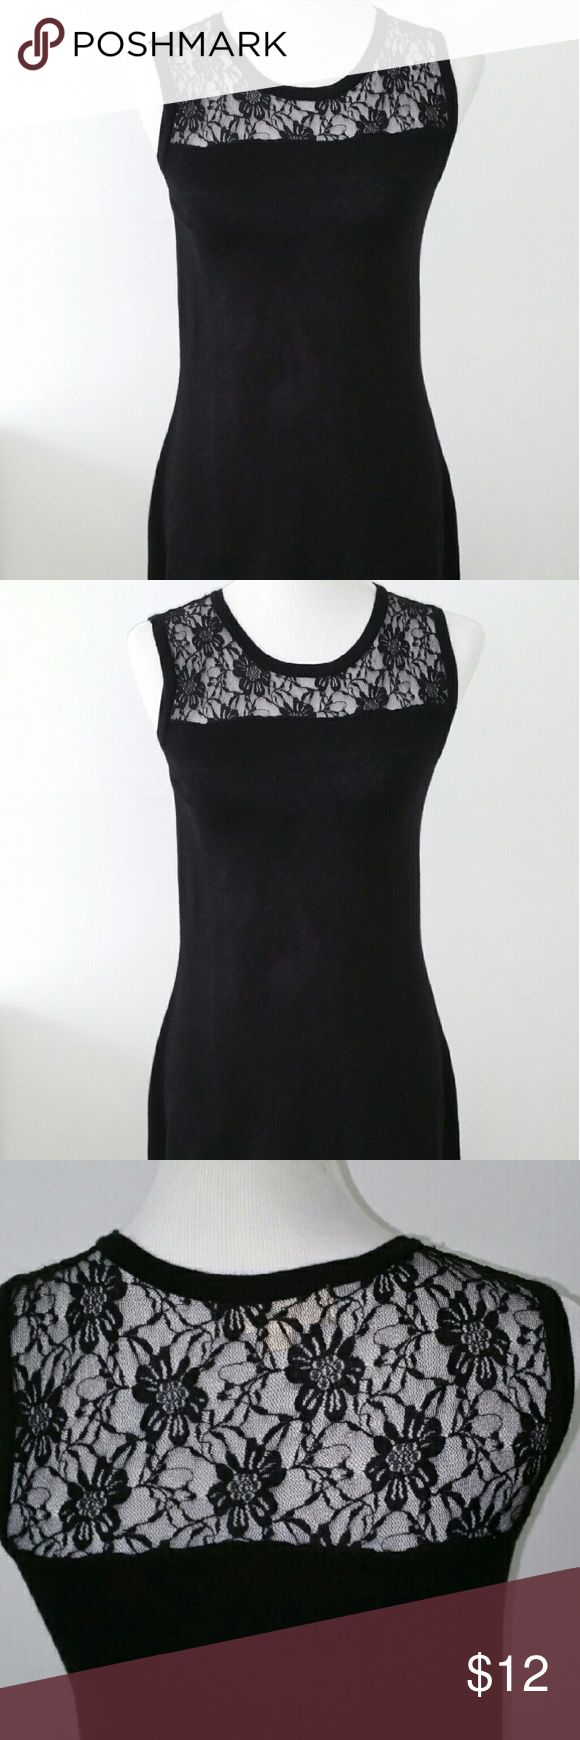 Black Laced Top Dress Knee Length Black Dress with lace top Pink Rose Dresses Midi